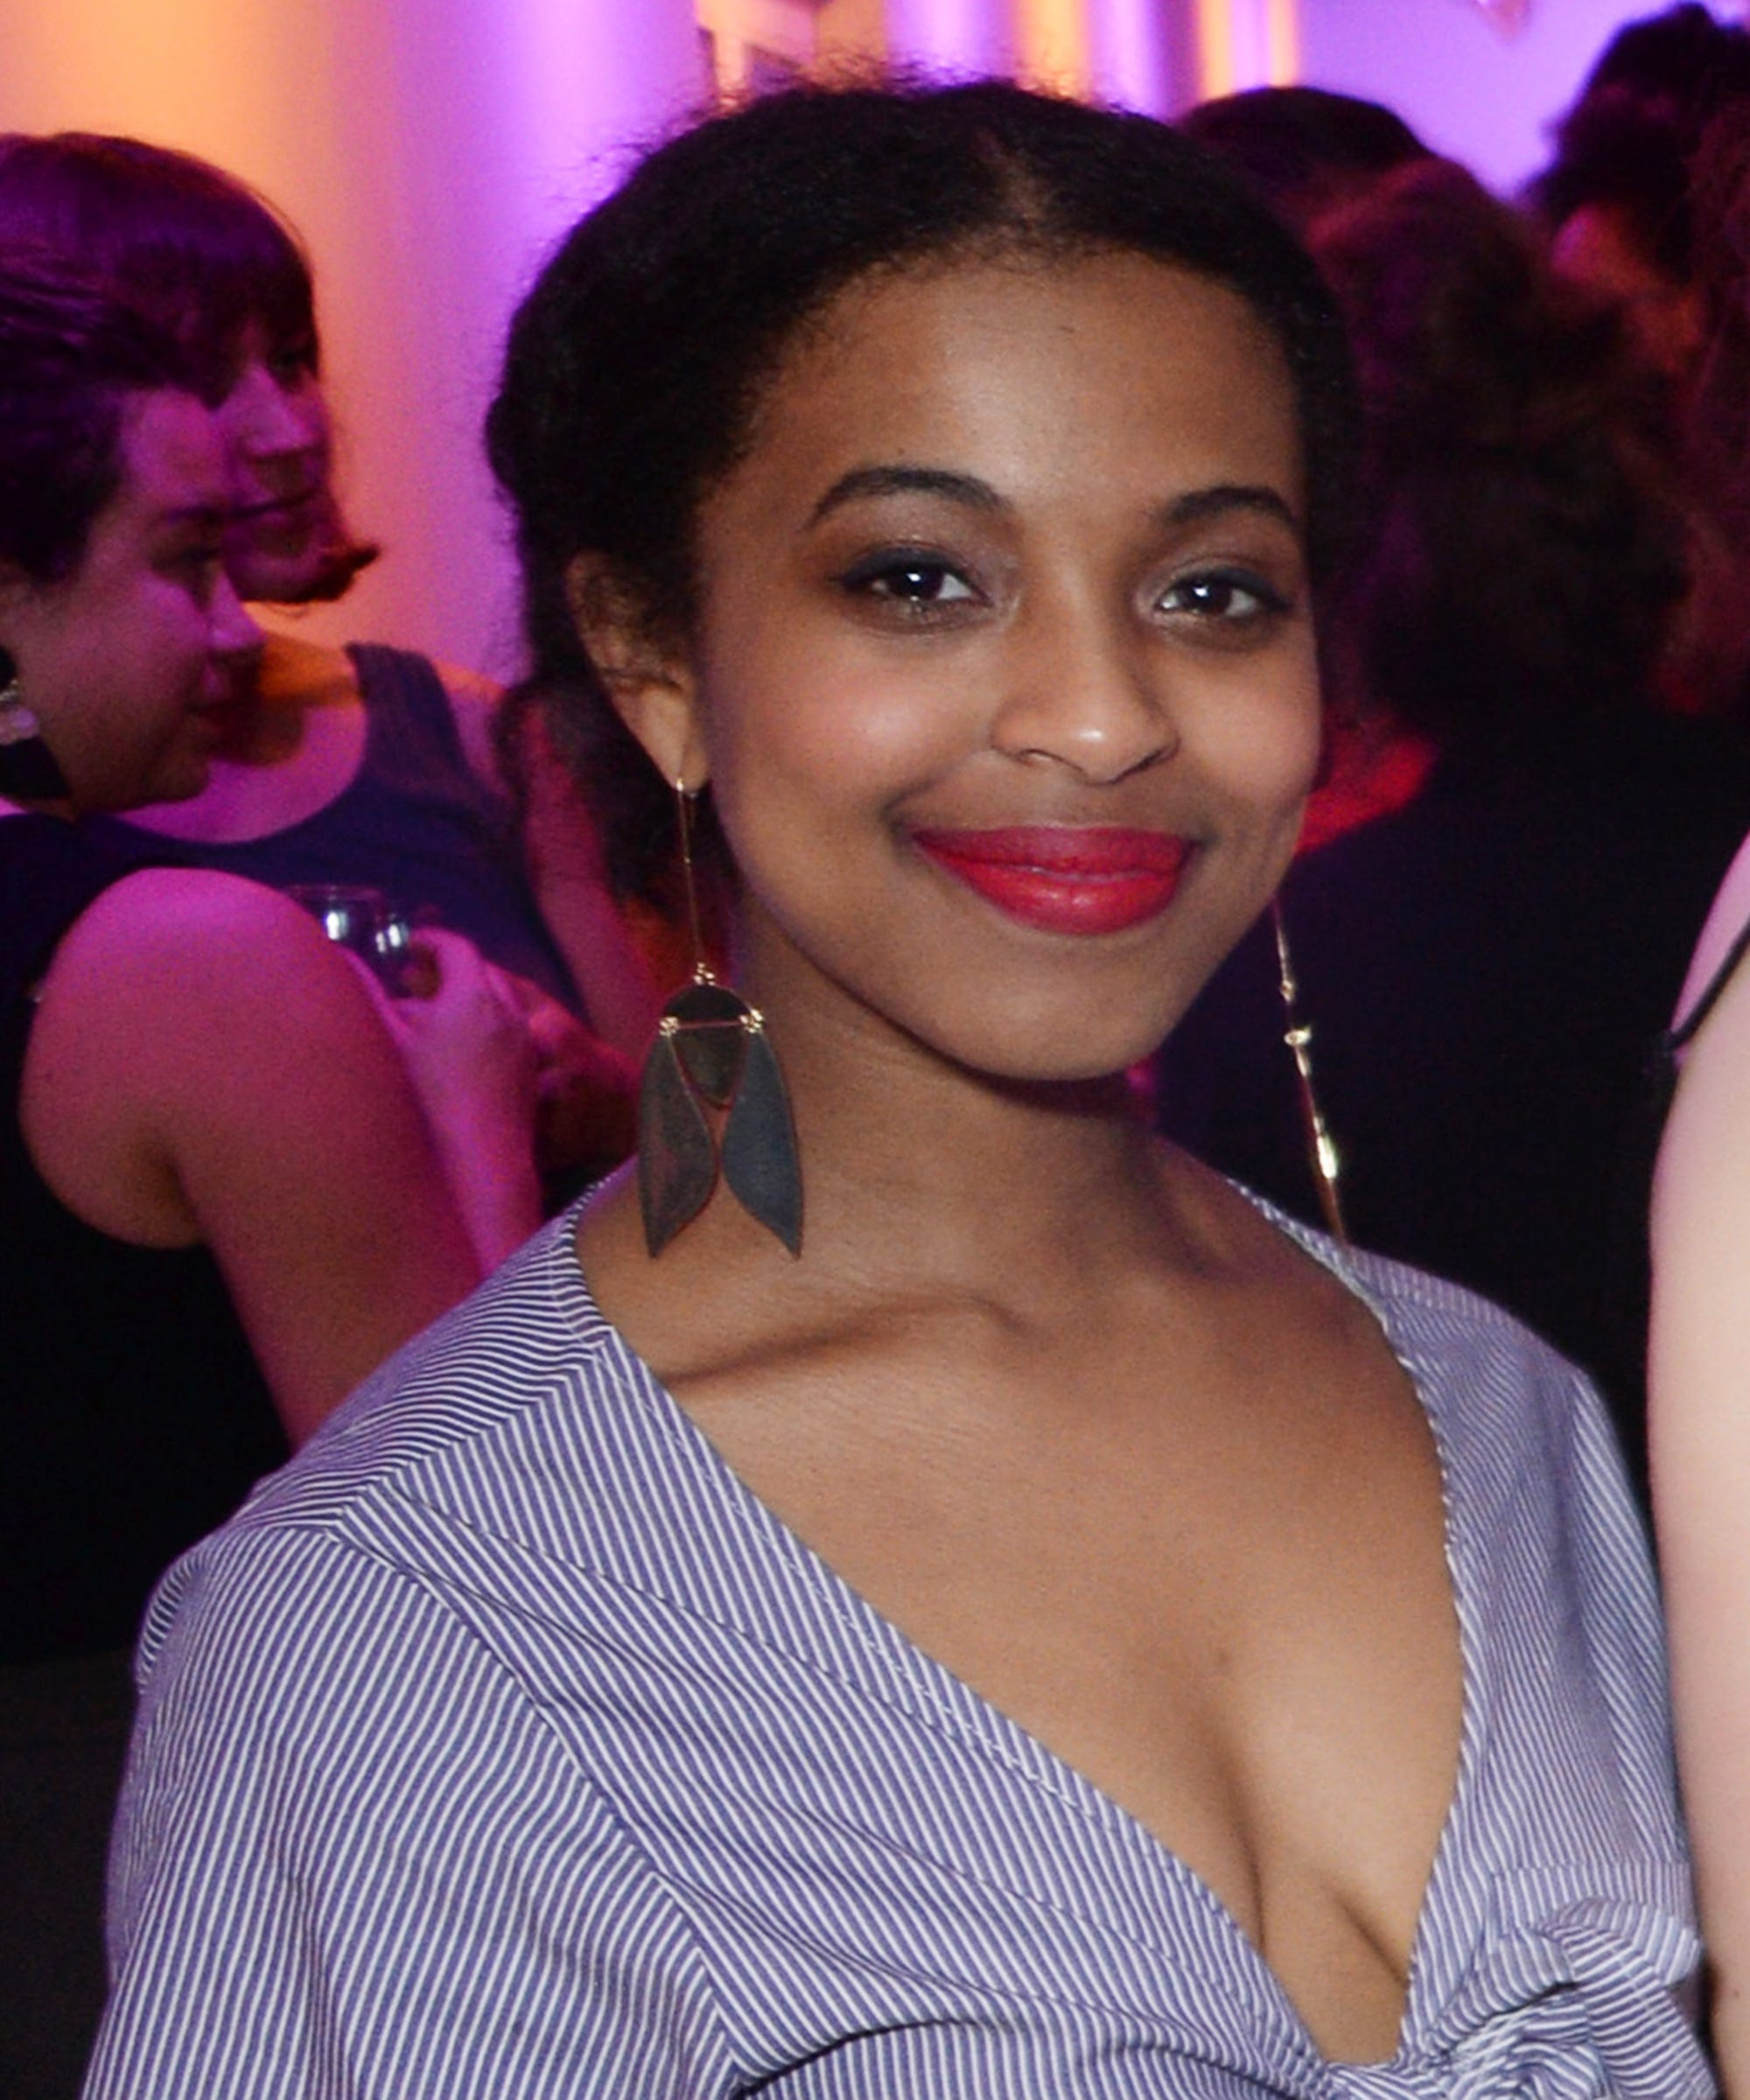 Meet Ani, The New Narrator Of 13 Reasons Why